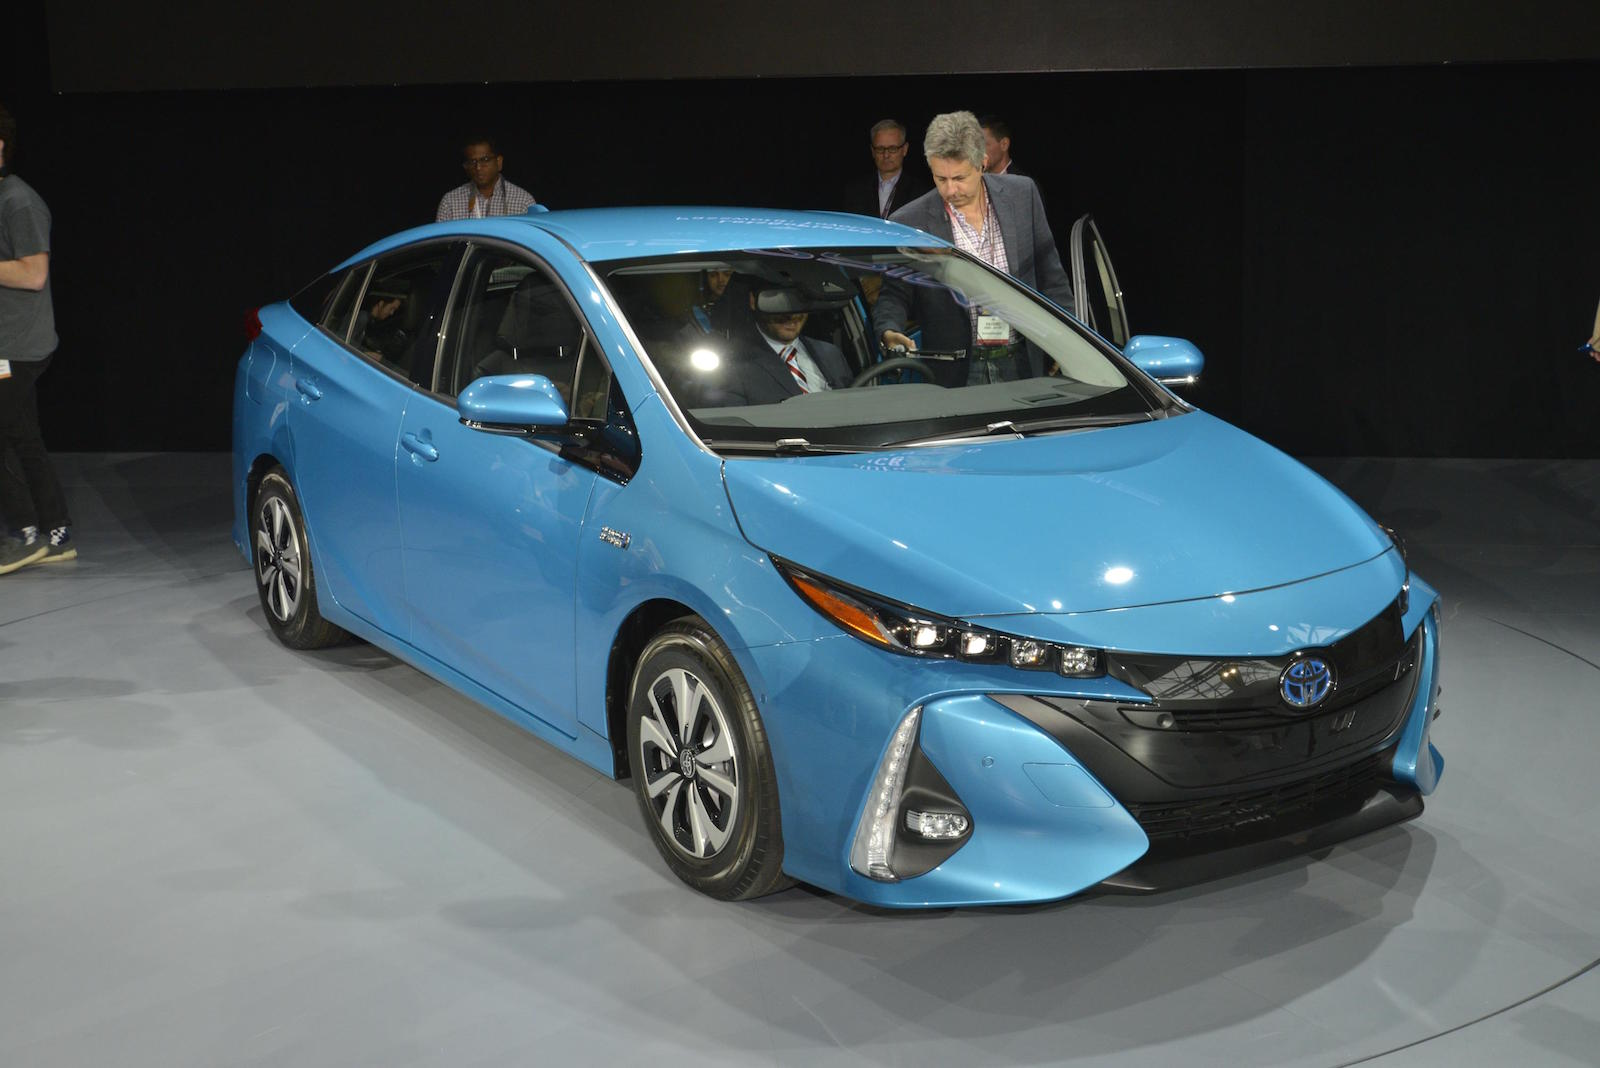 2016 toyota prius prime details on 120 mpge plug in hybrid all electric mode. Black Bedroom Furniture Sets. Home Design Ideas